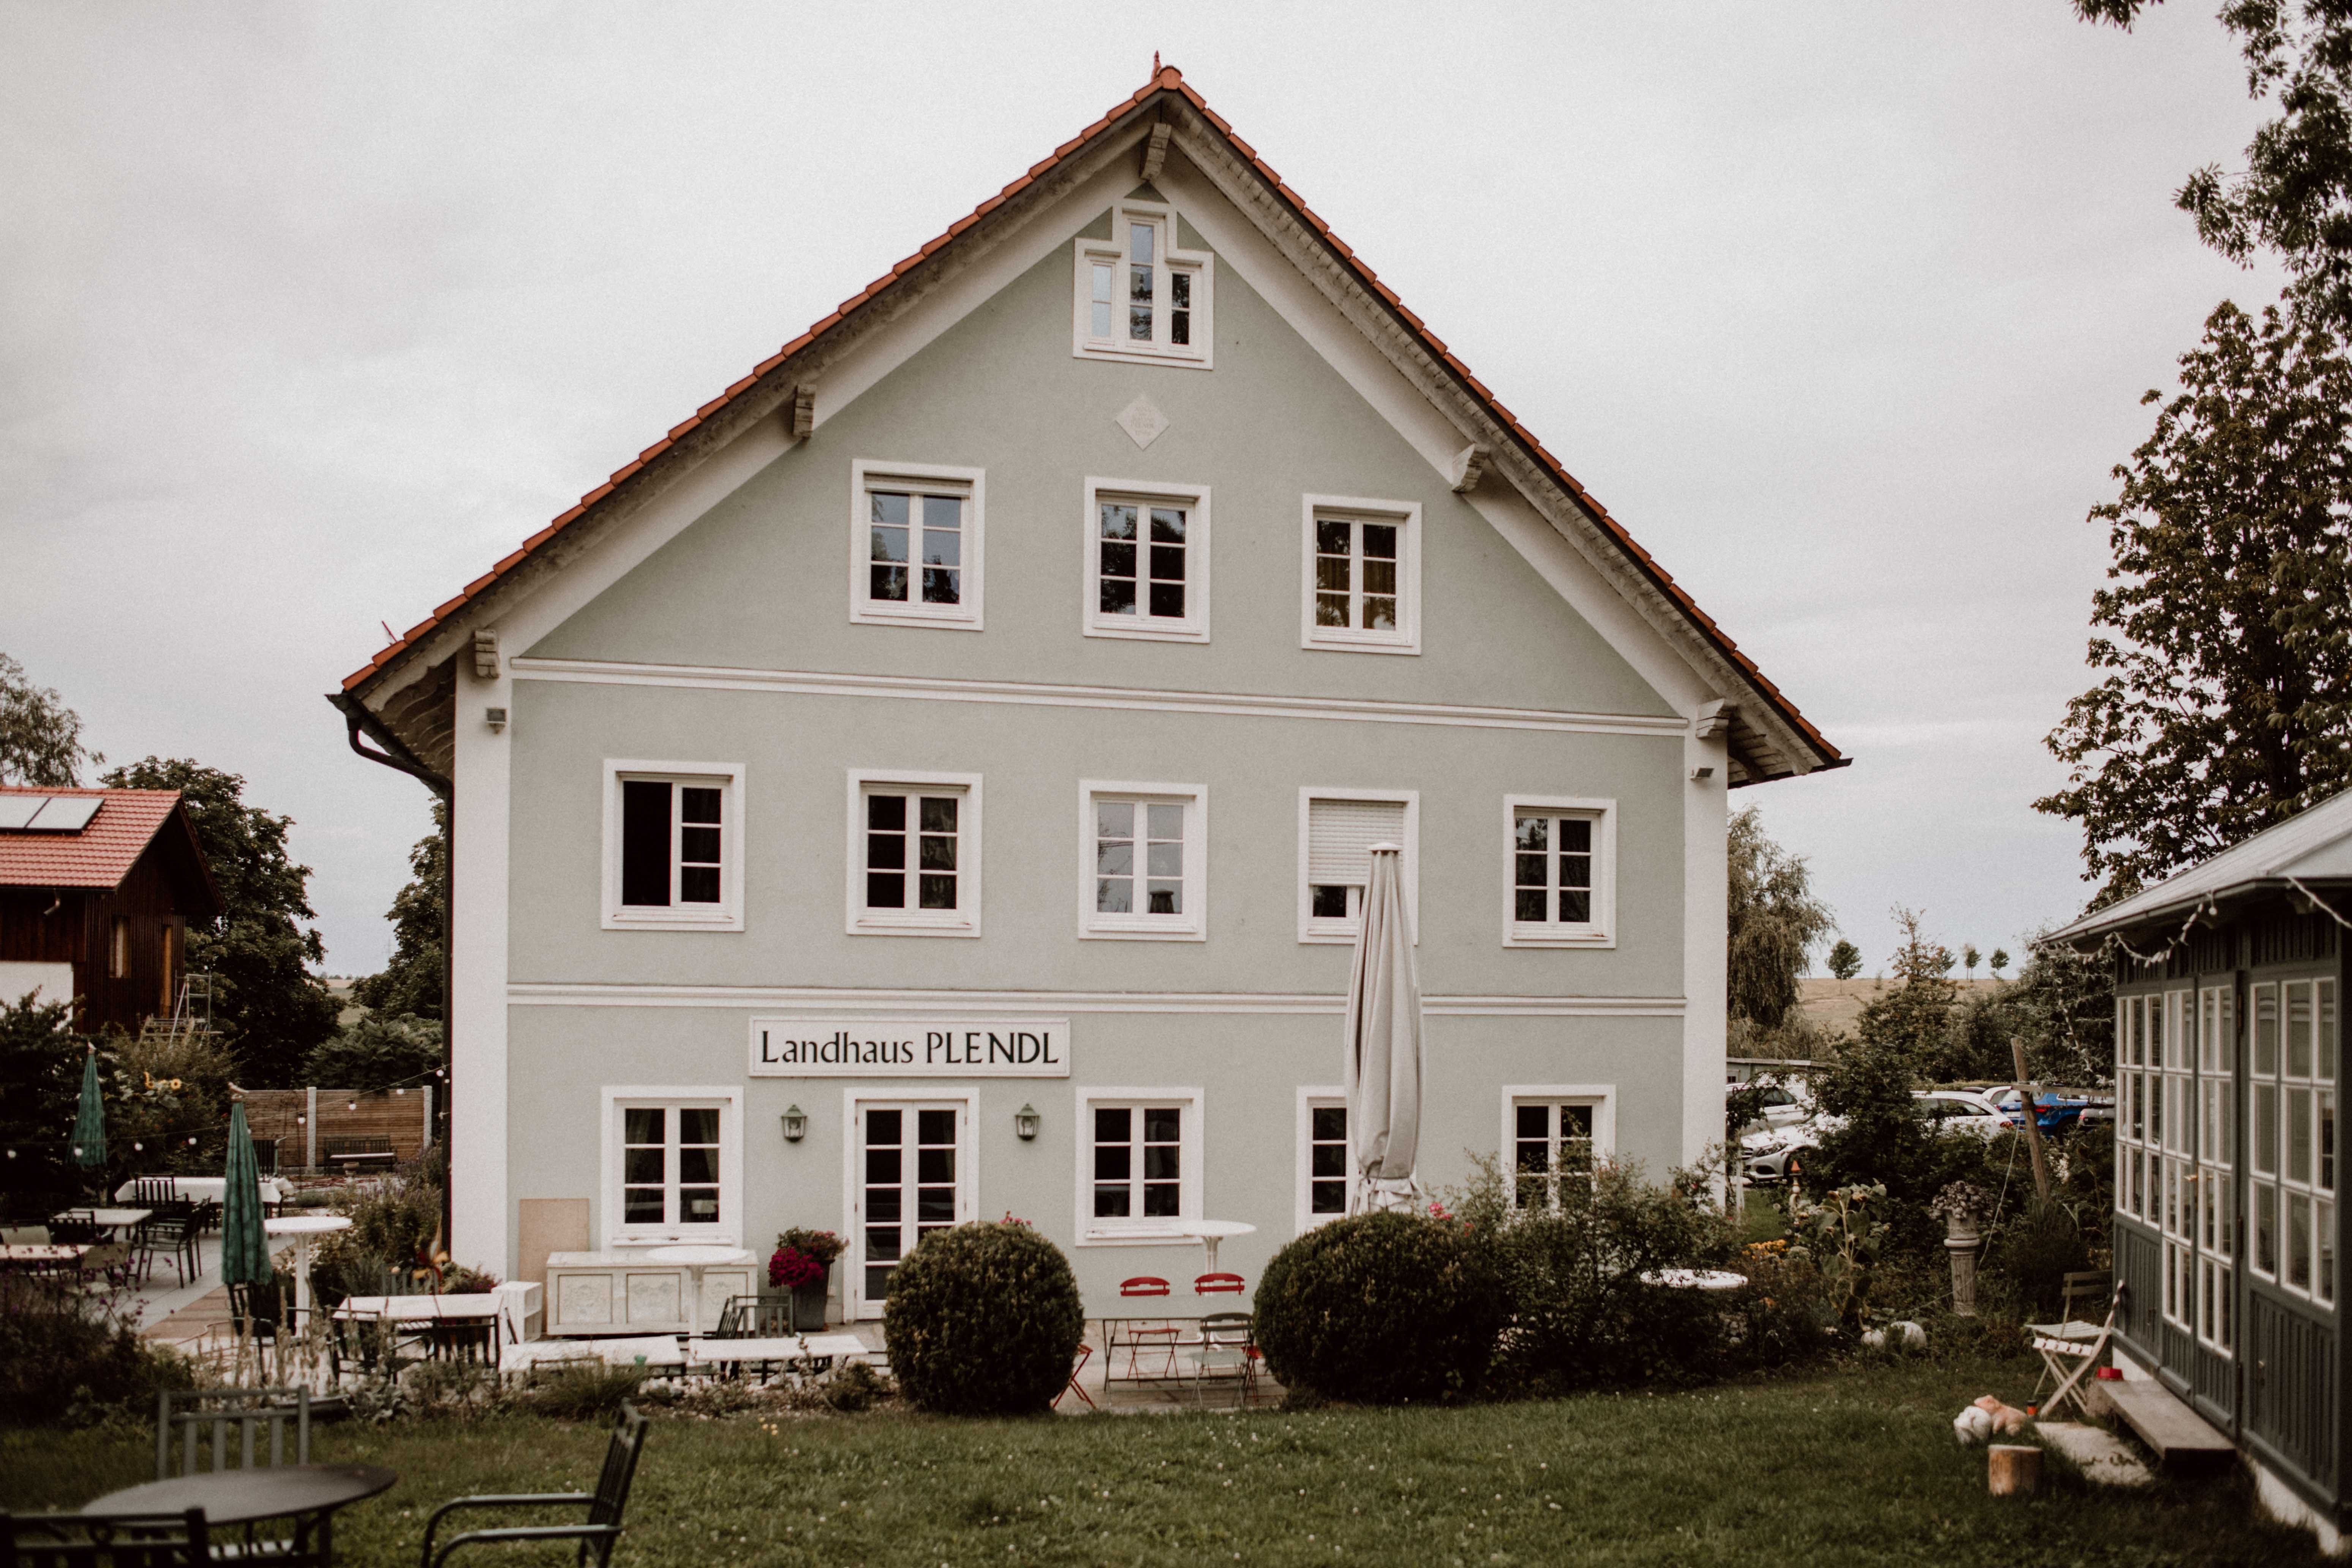 location landhaus sonja poehlmann photography couples muenchen bayern